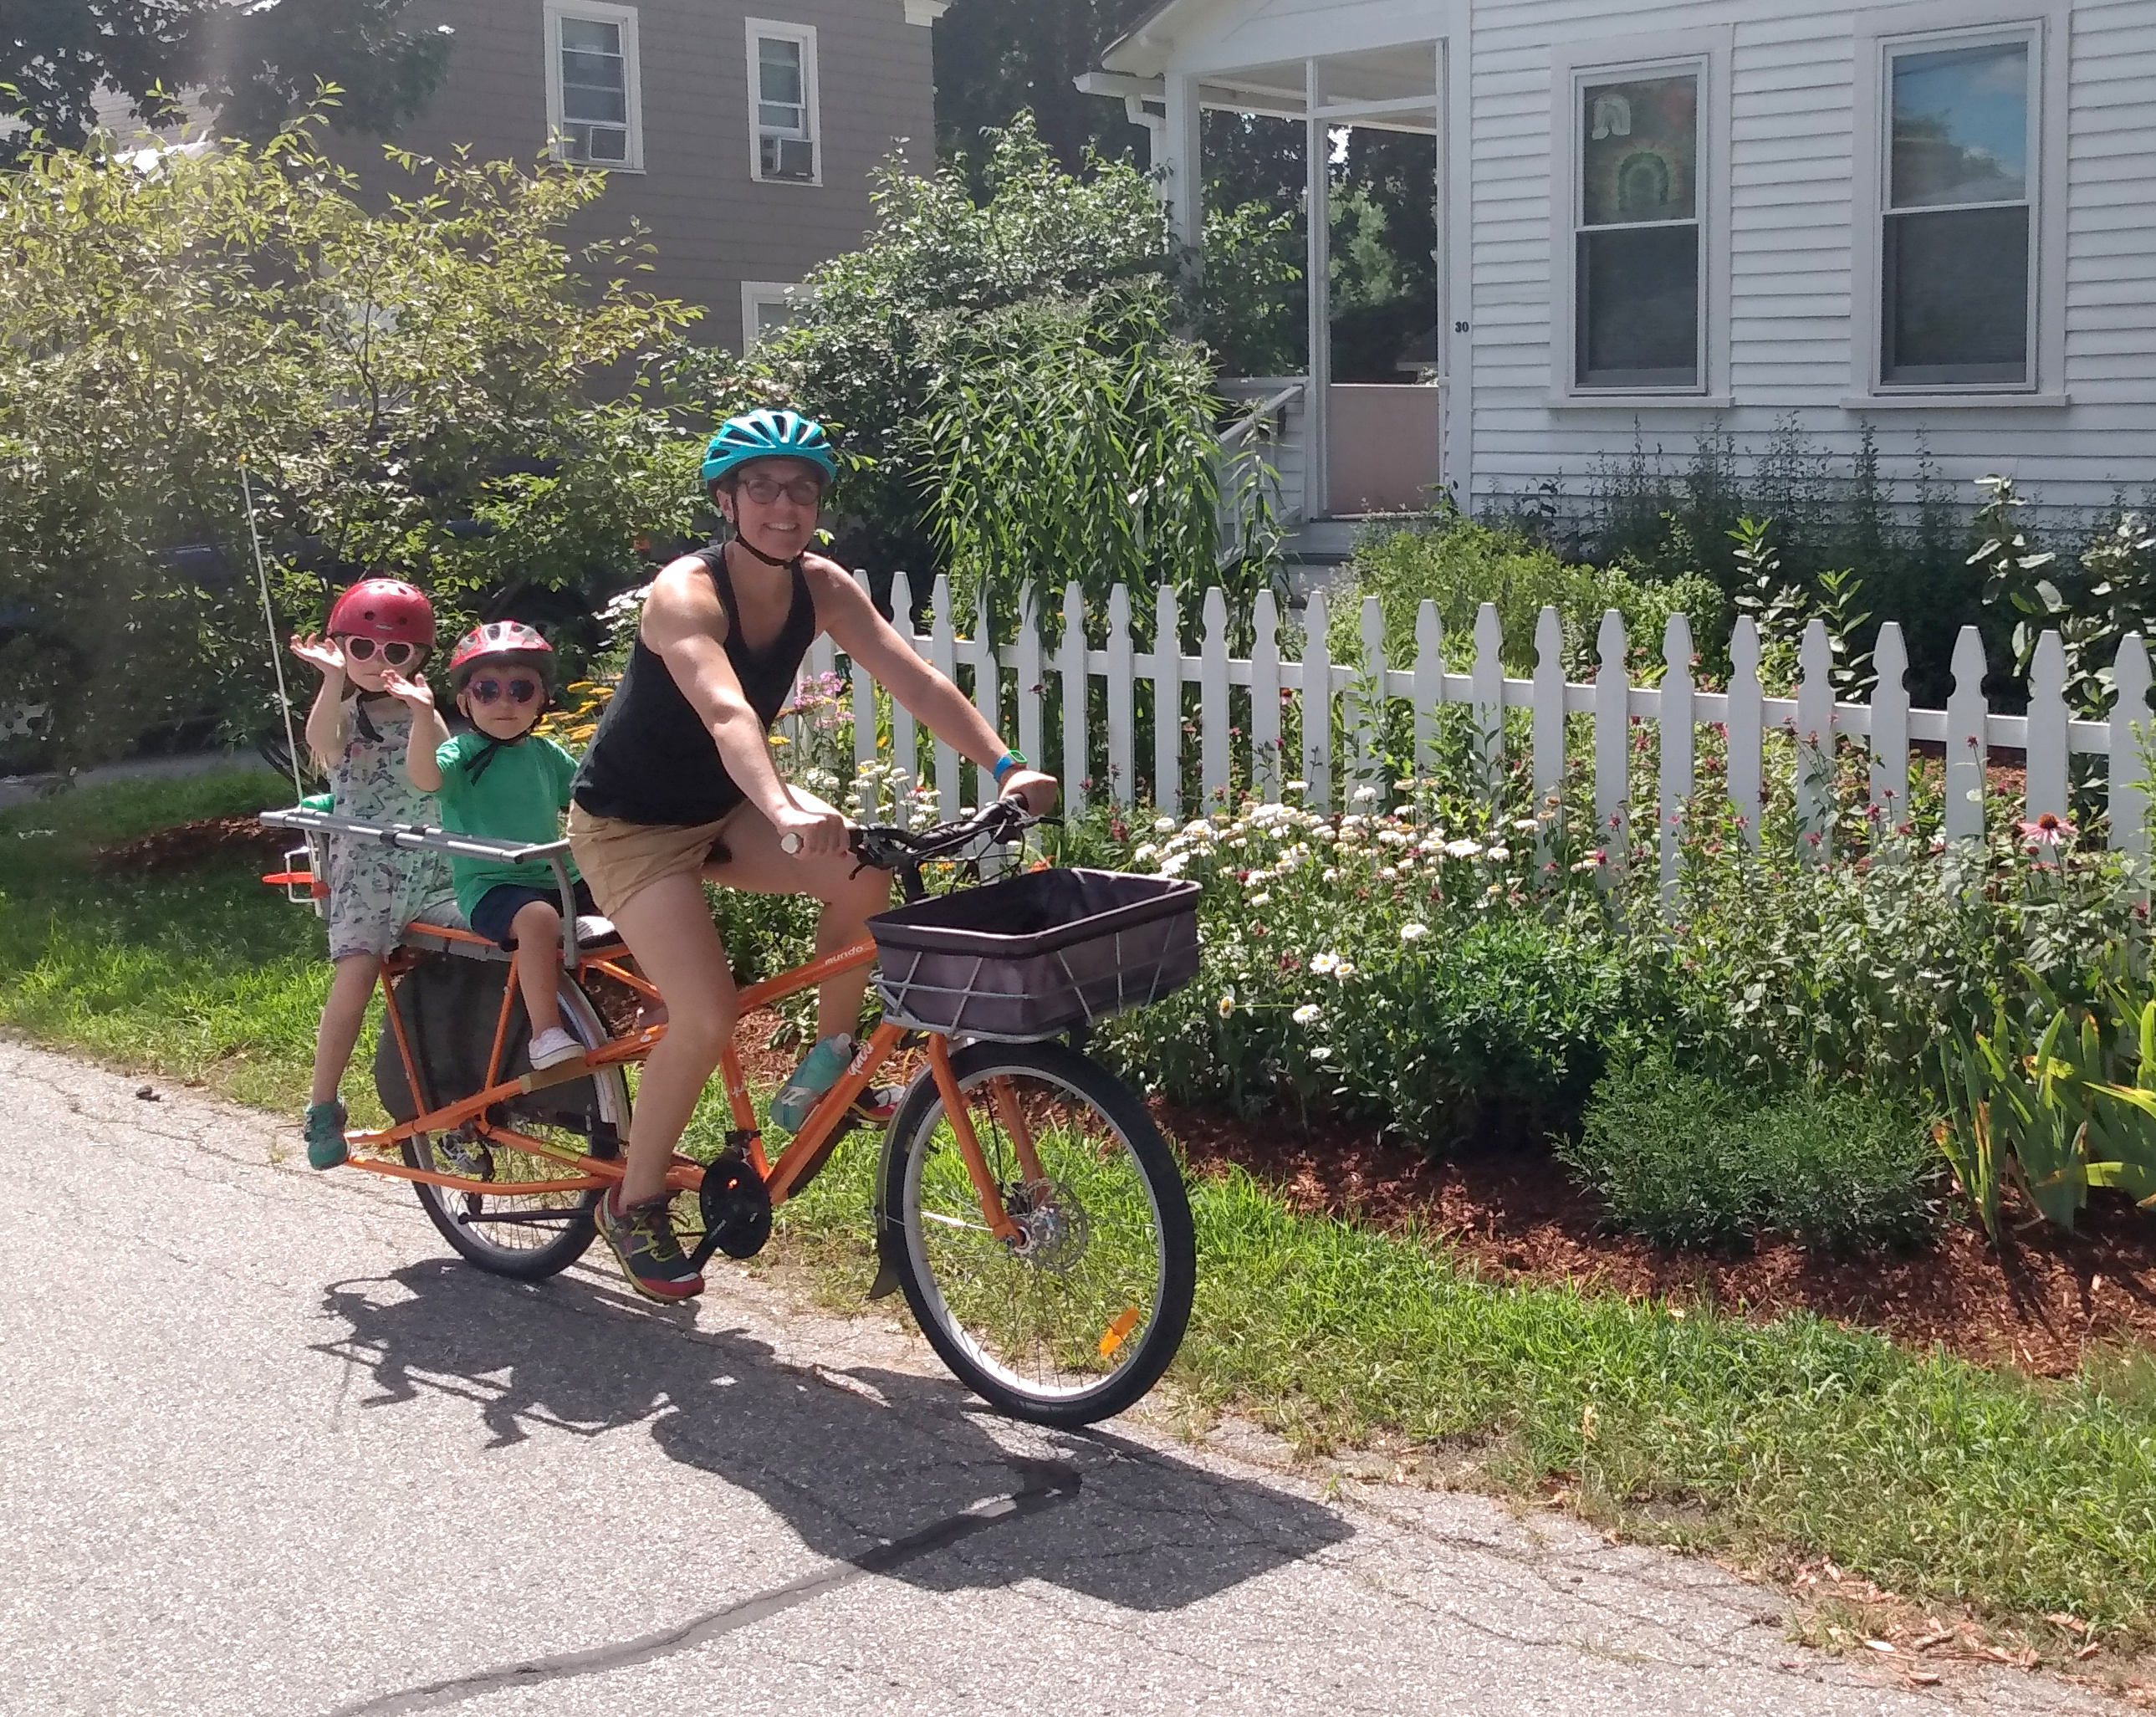 Jean Marie Bryenton with her kids Callum and Juno out on a cargo bicycle ride last July.